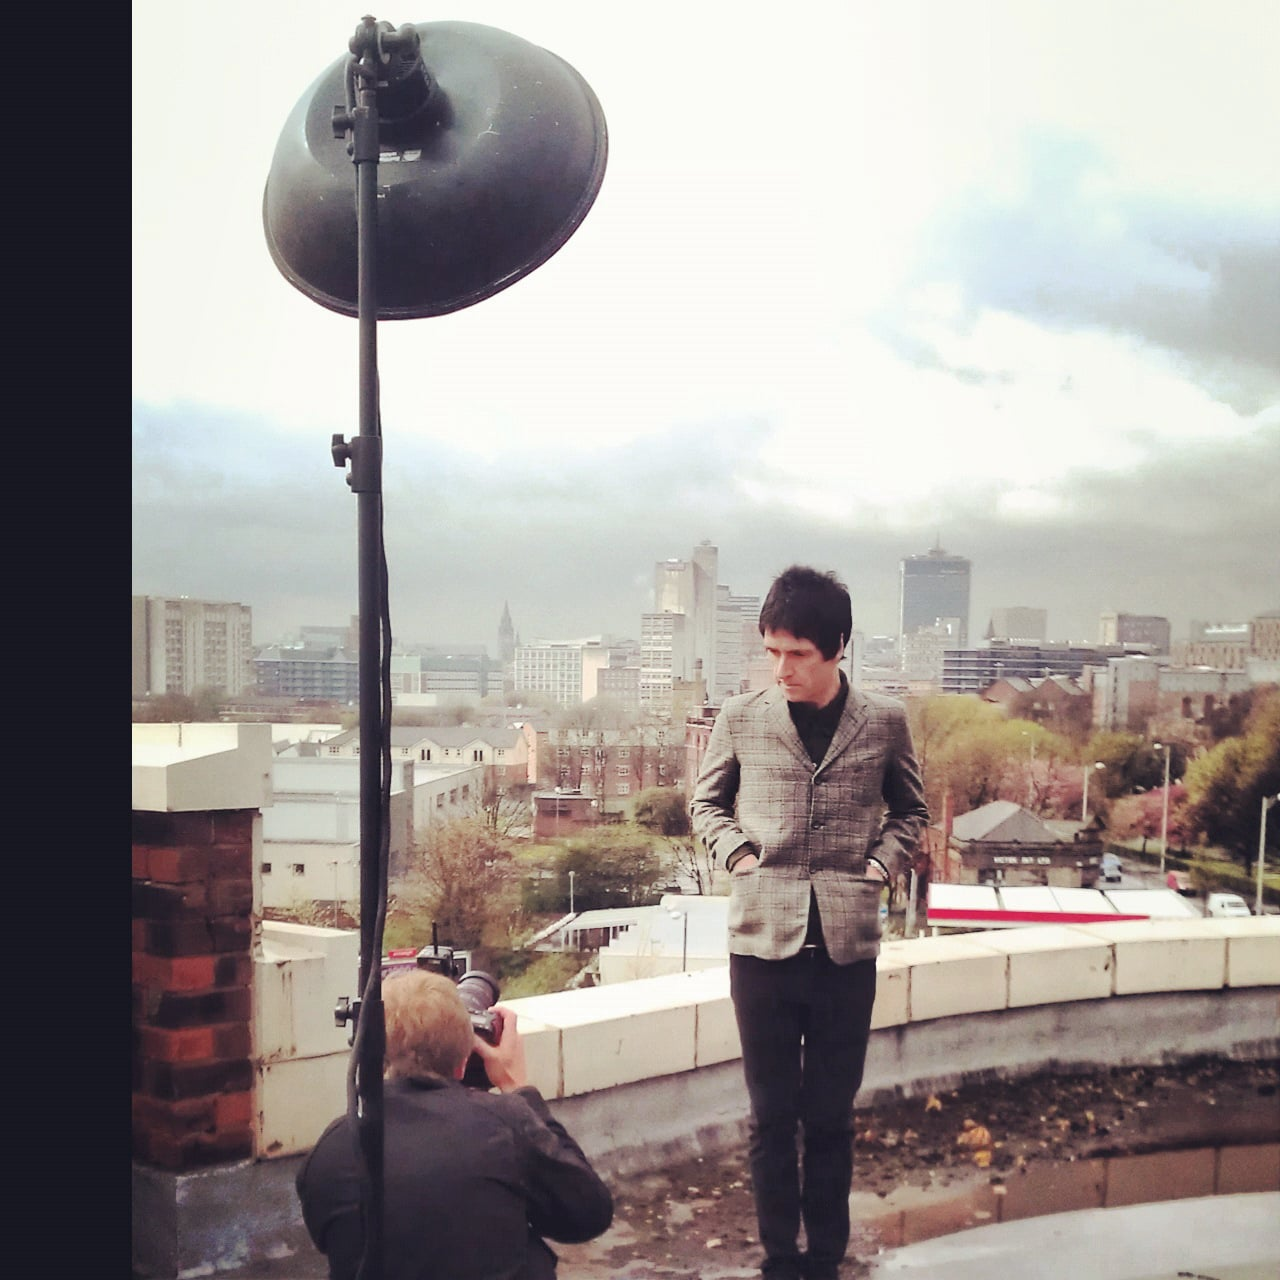 Me on a recent shoot with Johnny Marr   (Roof of apollo theatre)